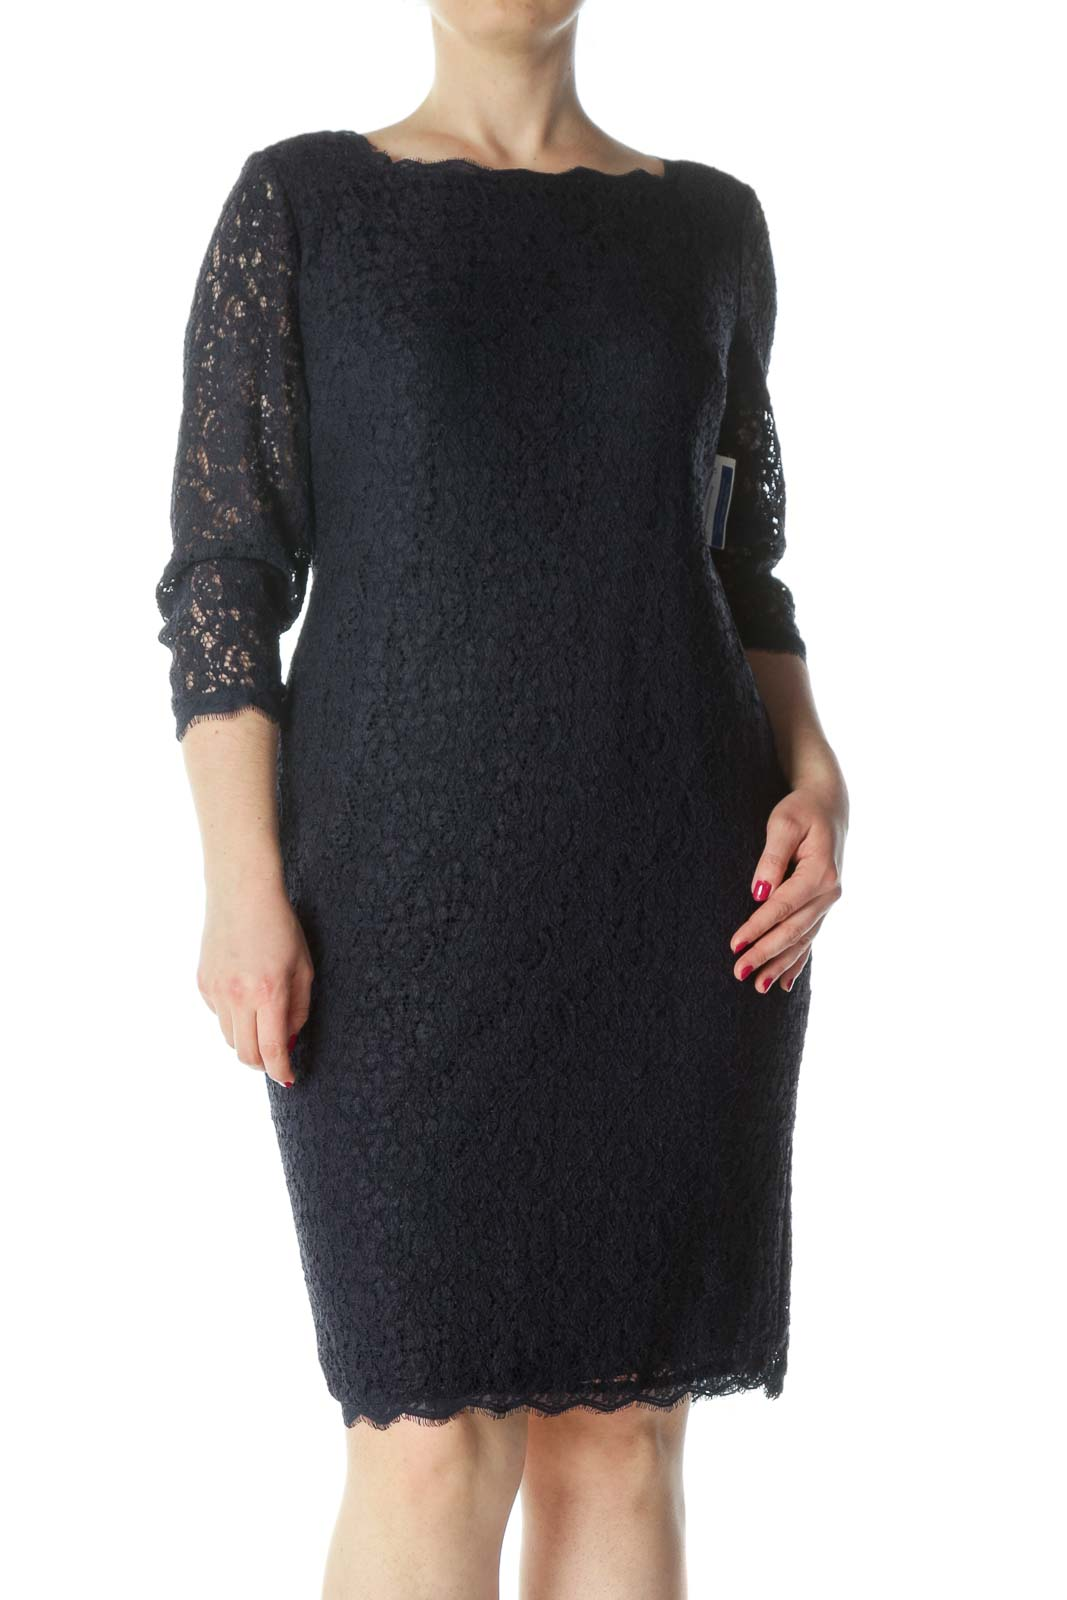 Navy-Blue Lace-Body 3/4-Sleeve Back-Zipper Dress